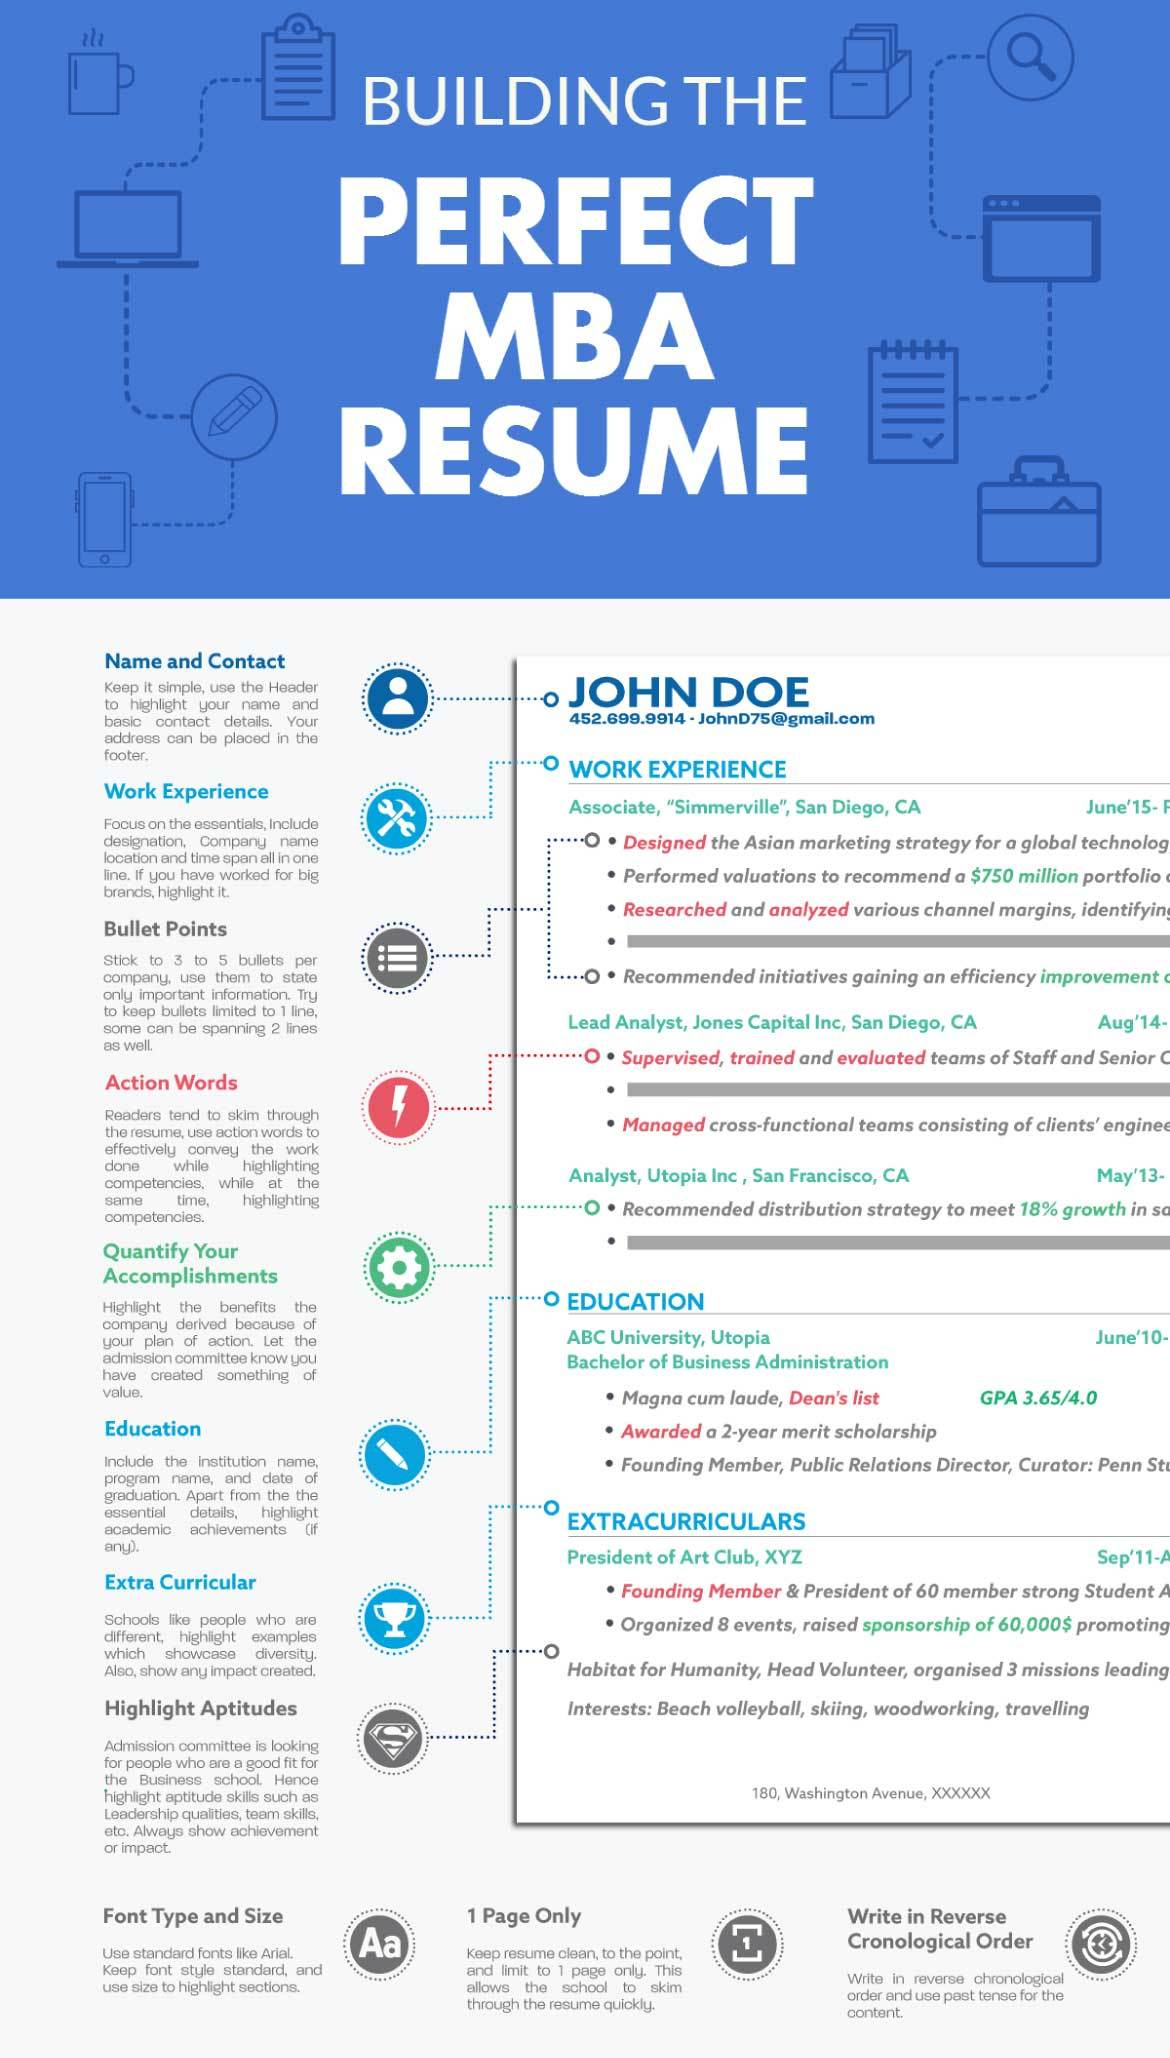 10 Steps Towards Creating the Perfect MBA Resume Infographic - e ...